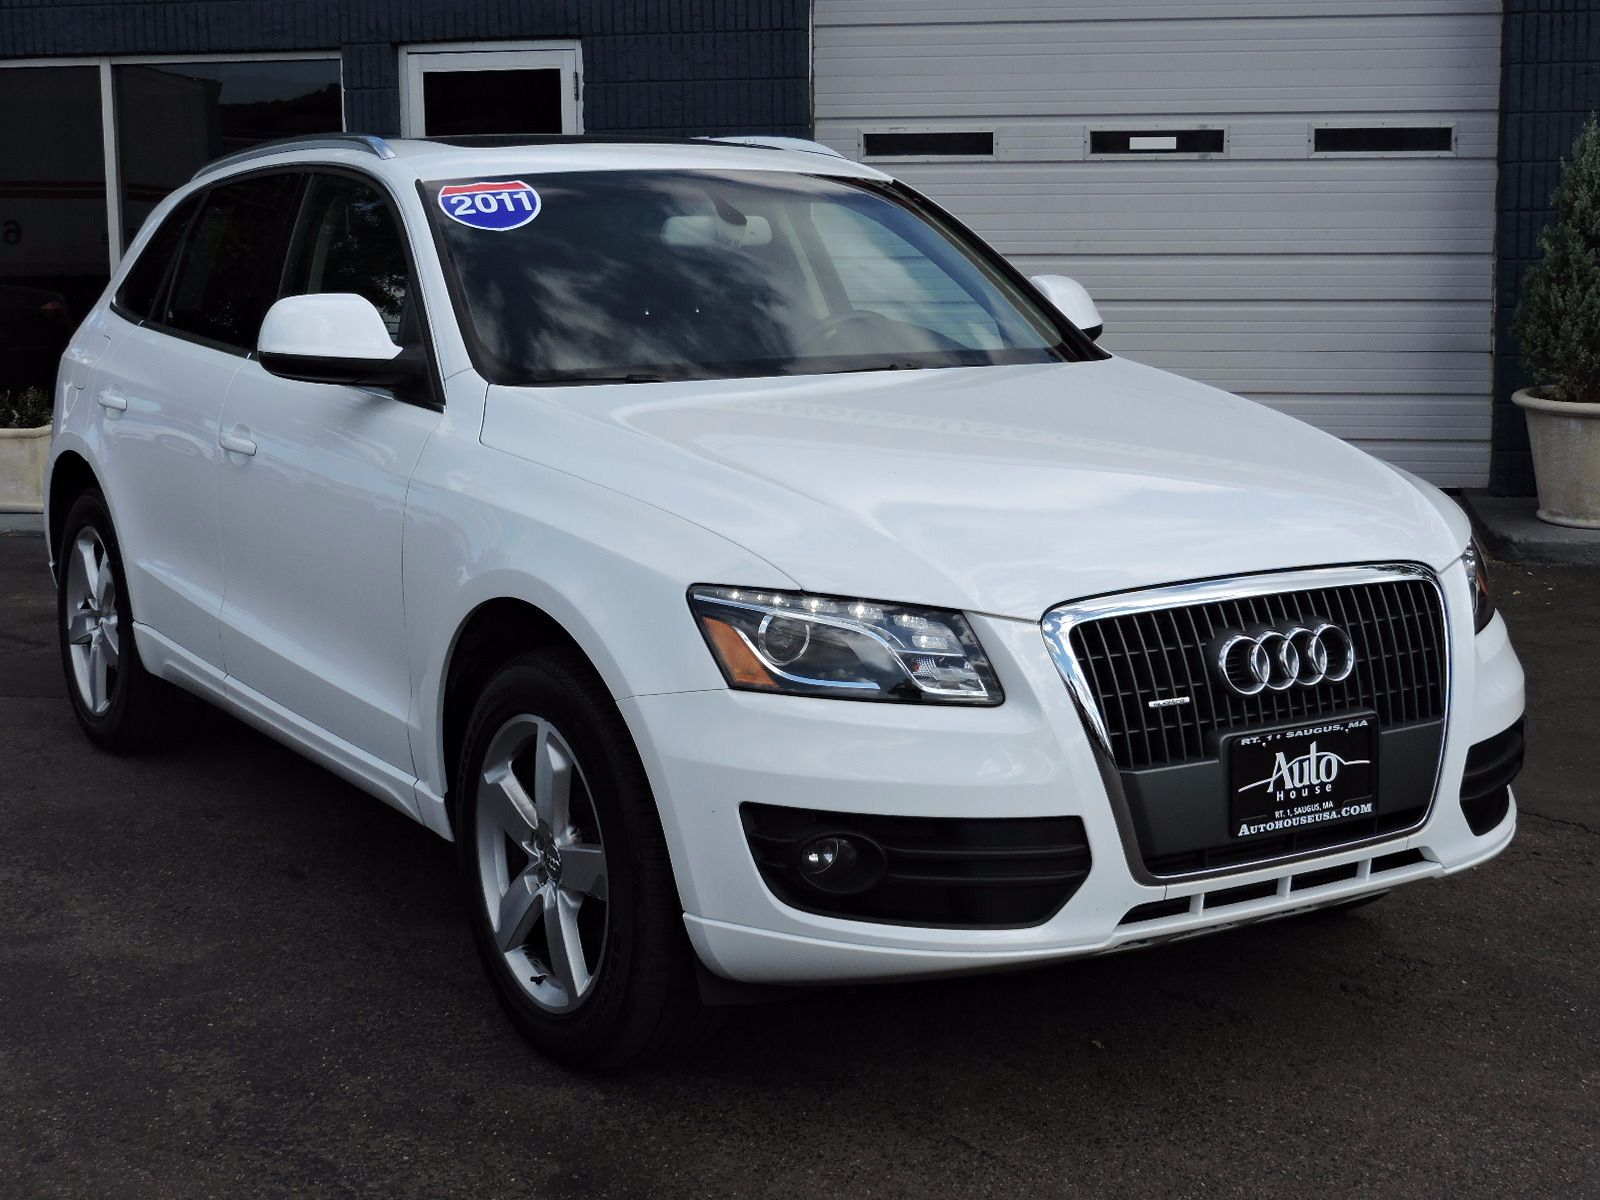 2011 Audi Q5 2.0T - Quattro - All Wheel Drive